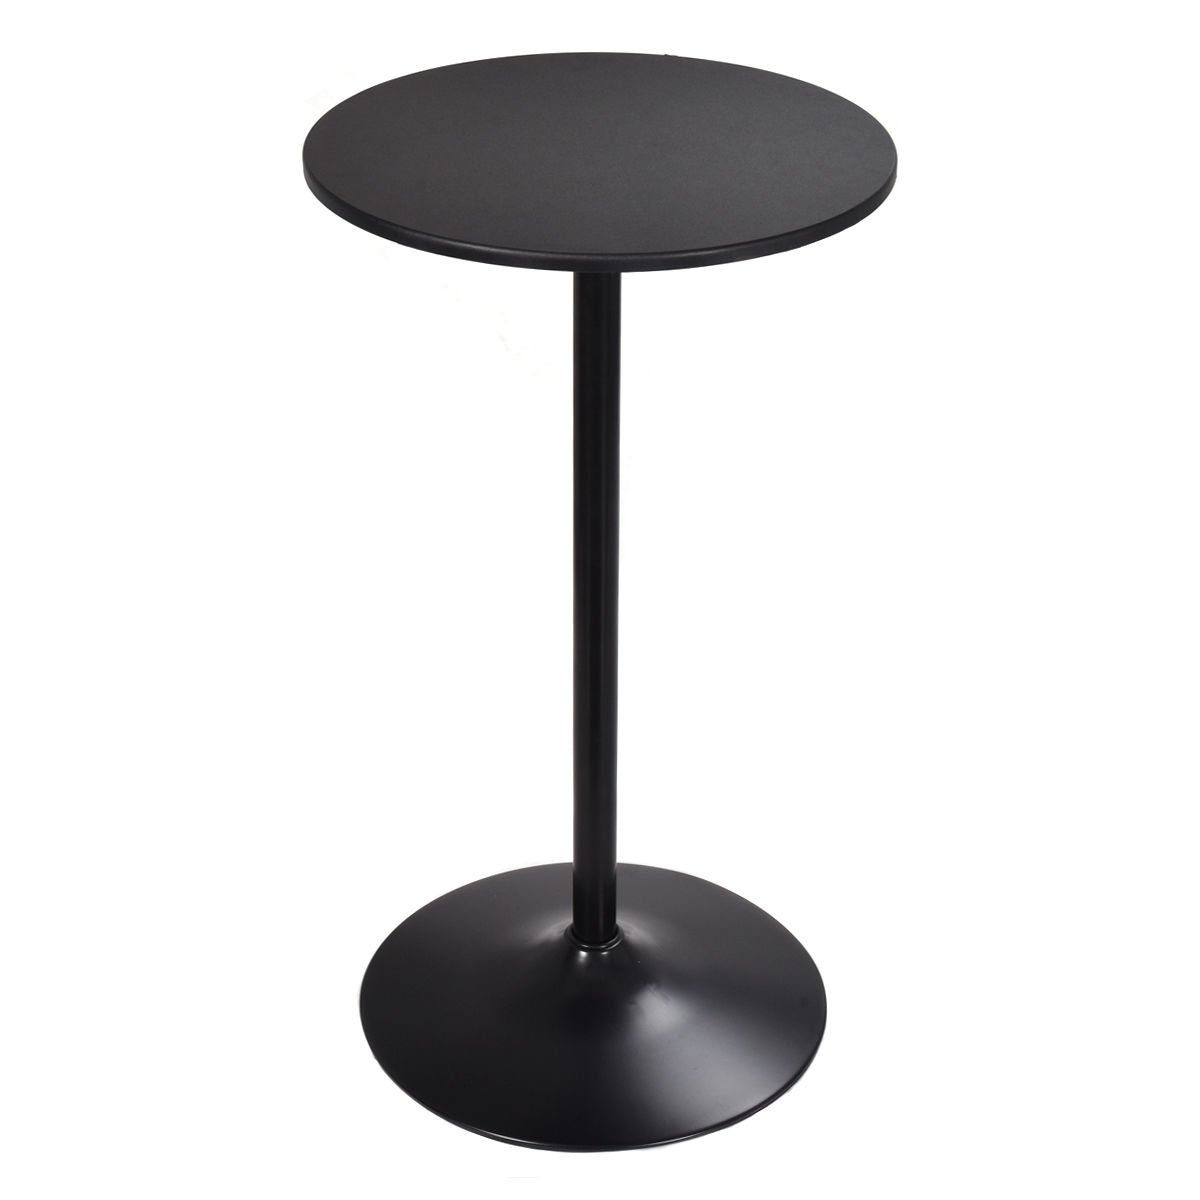 COSTWAY High Table Pub Bar Table Bistro Round Top Black, 42-Inch Height